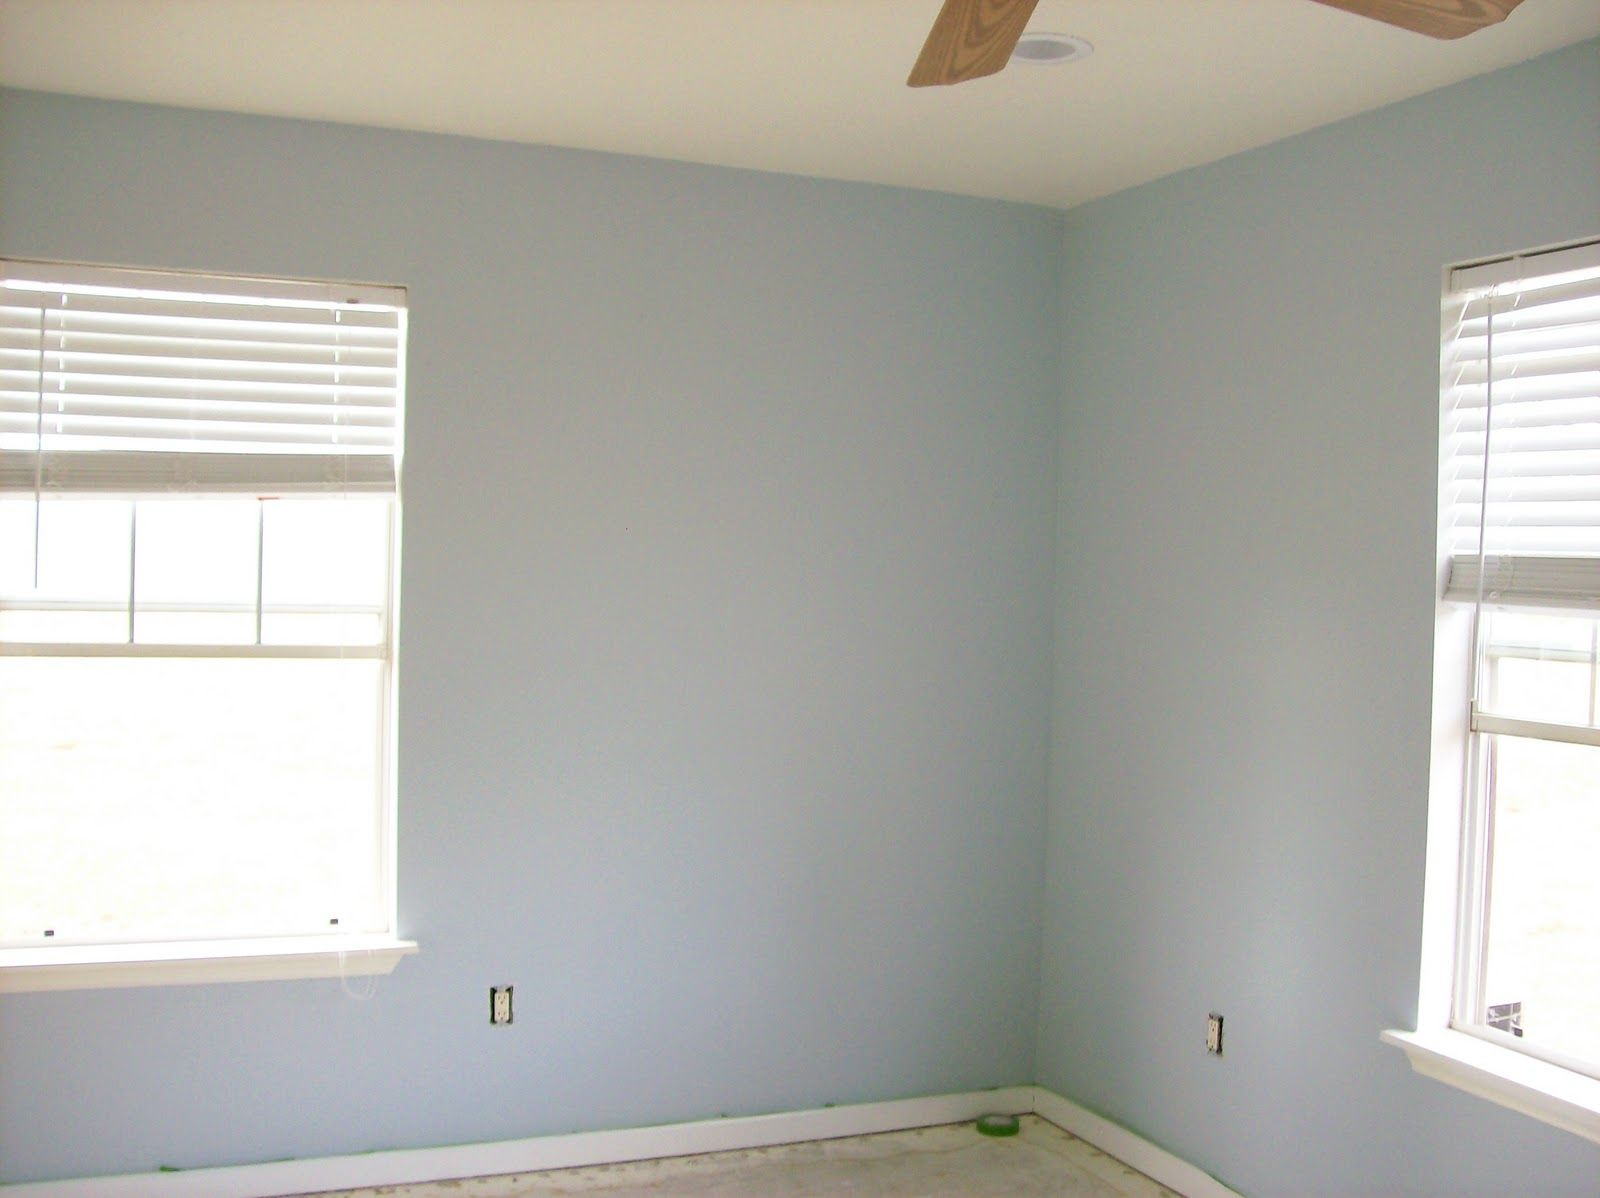 Master Bedroom Paint Colors Benjamin Moore 22 Best Images About Paint Colors On Pinterest Benjamin Moore